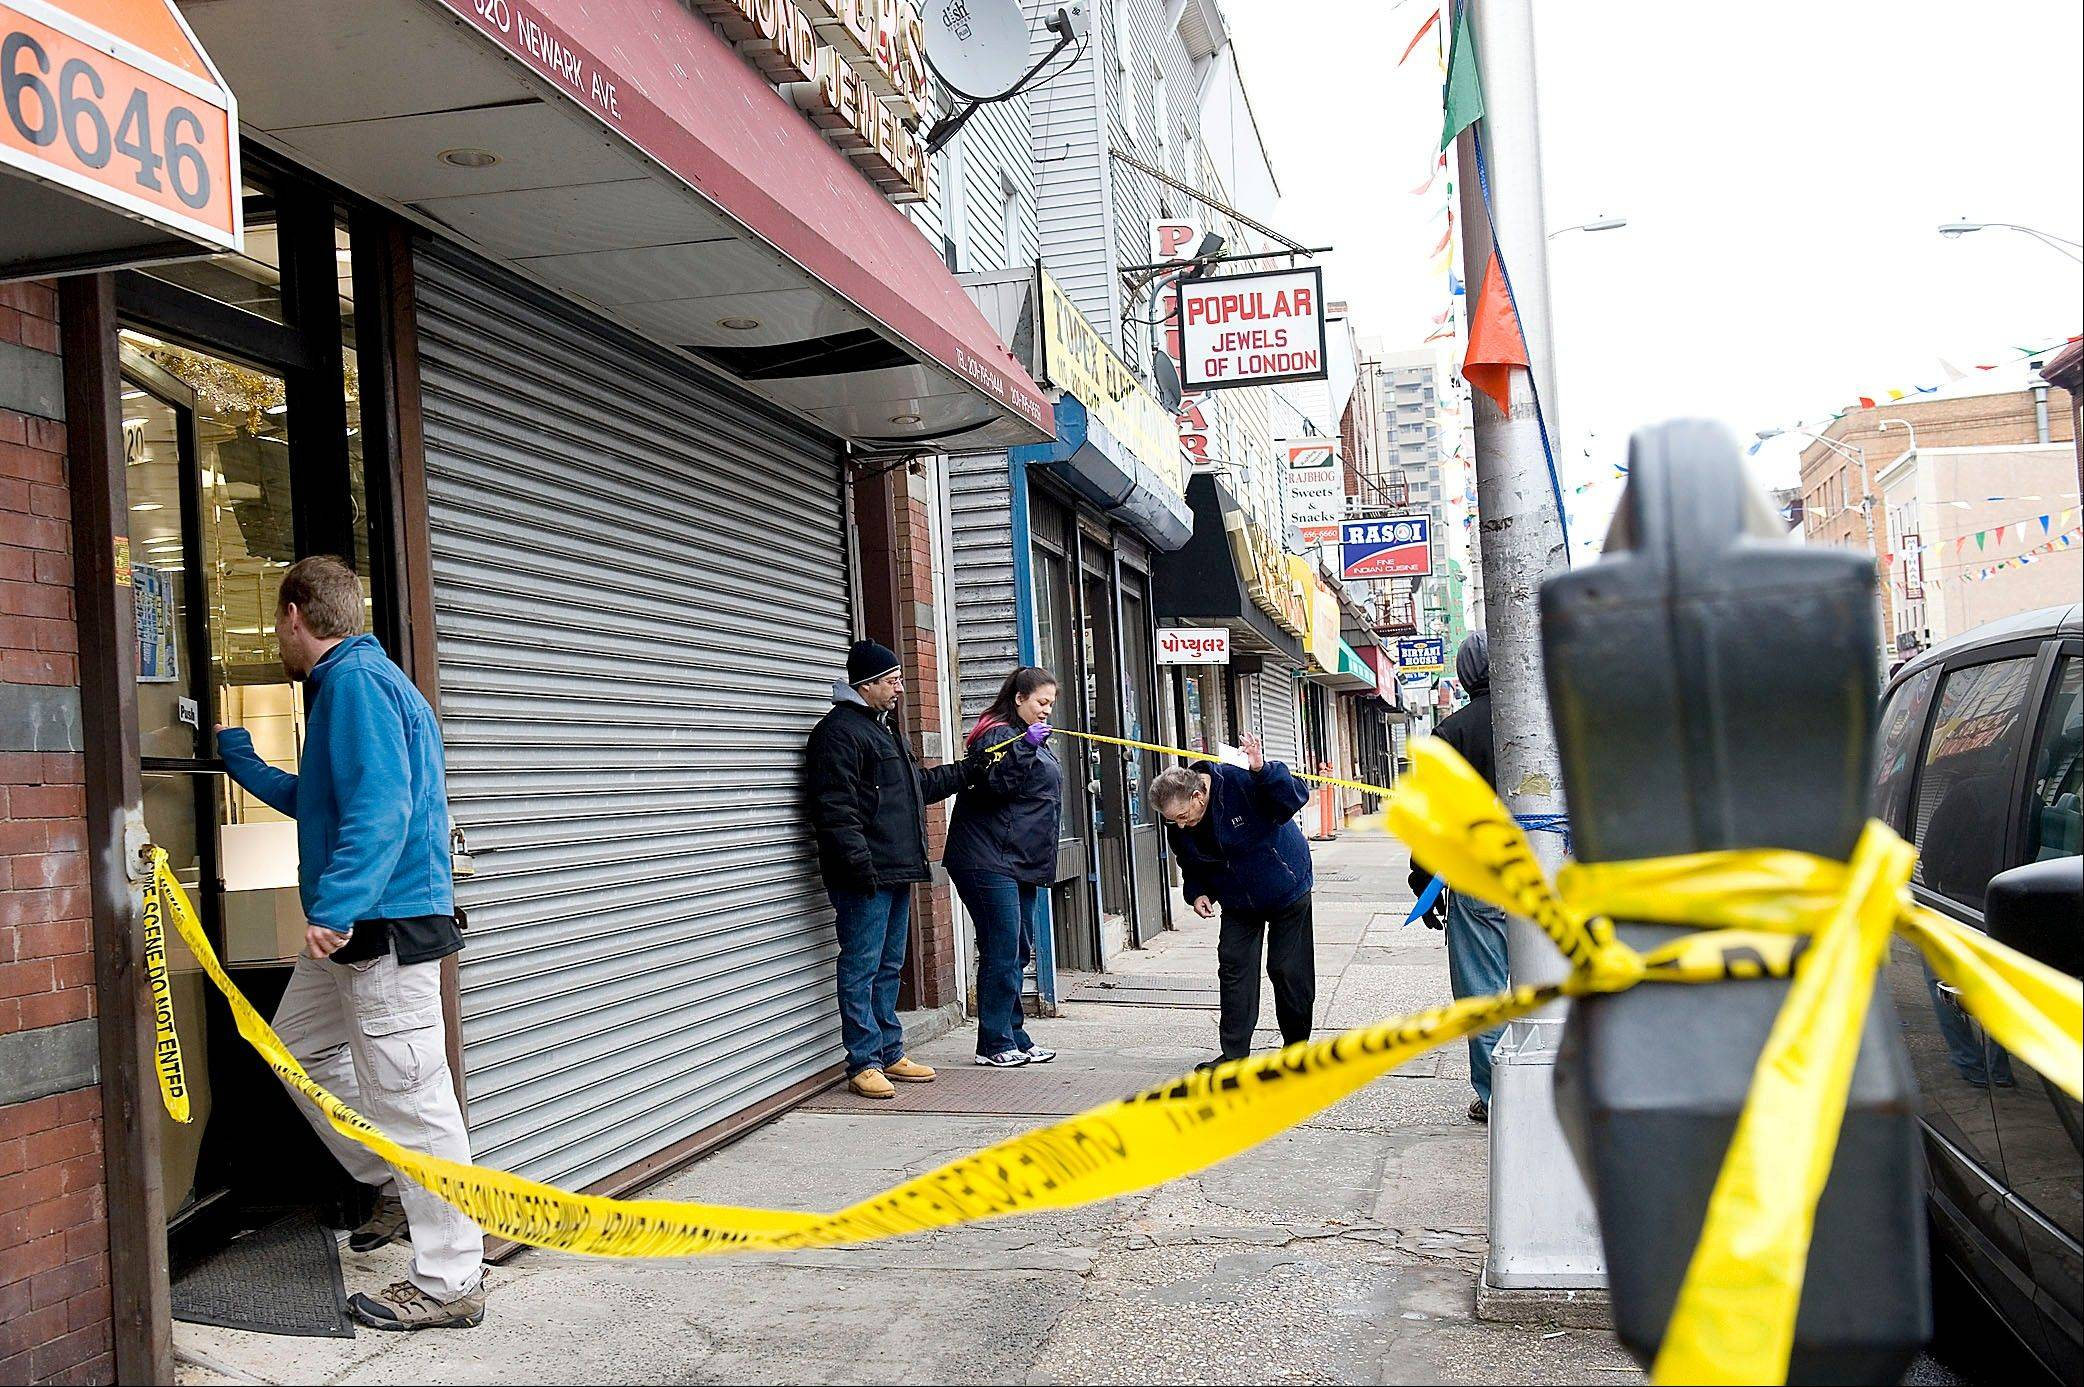 FBI agents enter Raja Jewelers in Jersey City last week, investigating an international credit card fraud ring. The $200 million credit card scheme authorities broke up was notable not only for the amount of money involved, but the outlay of patience and planning it required.